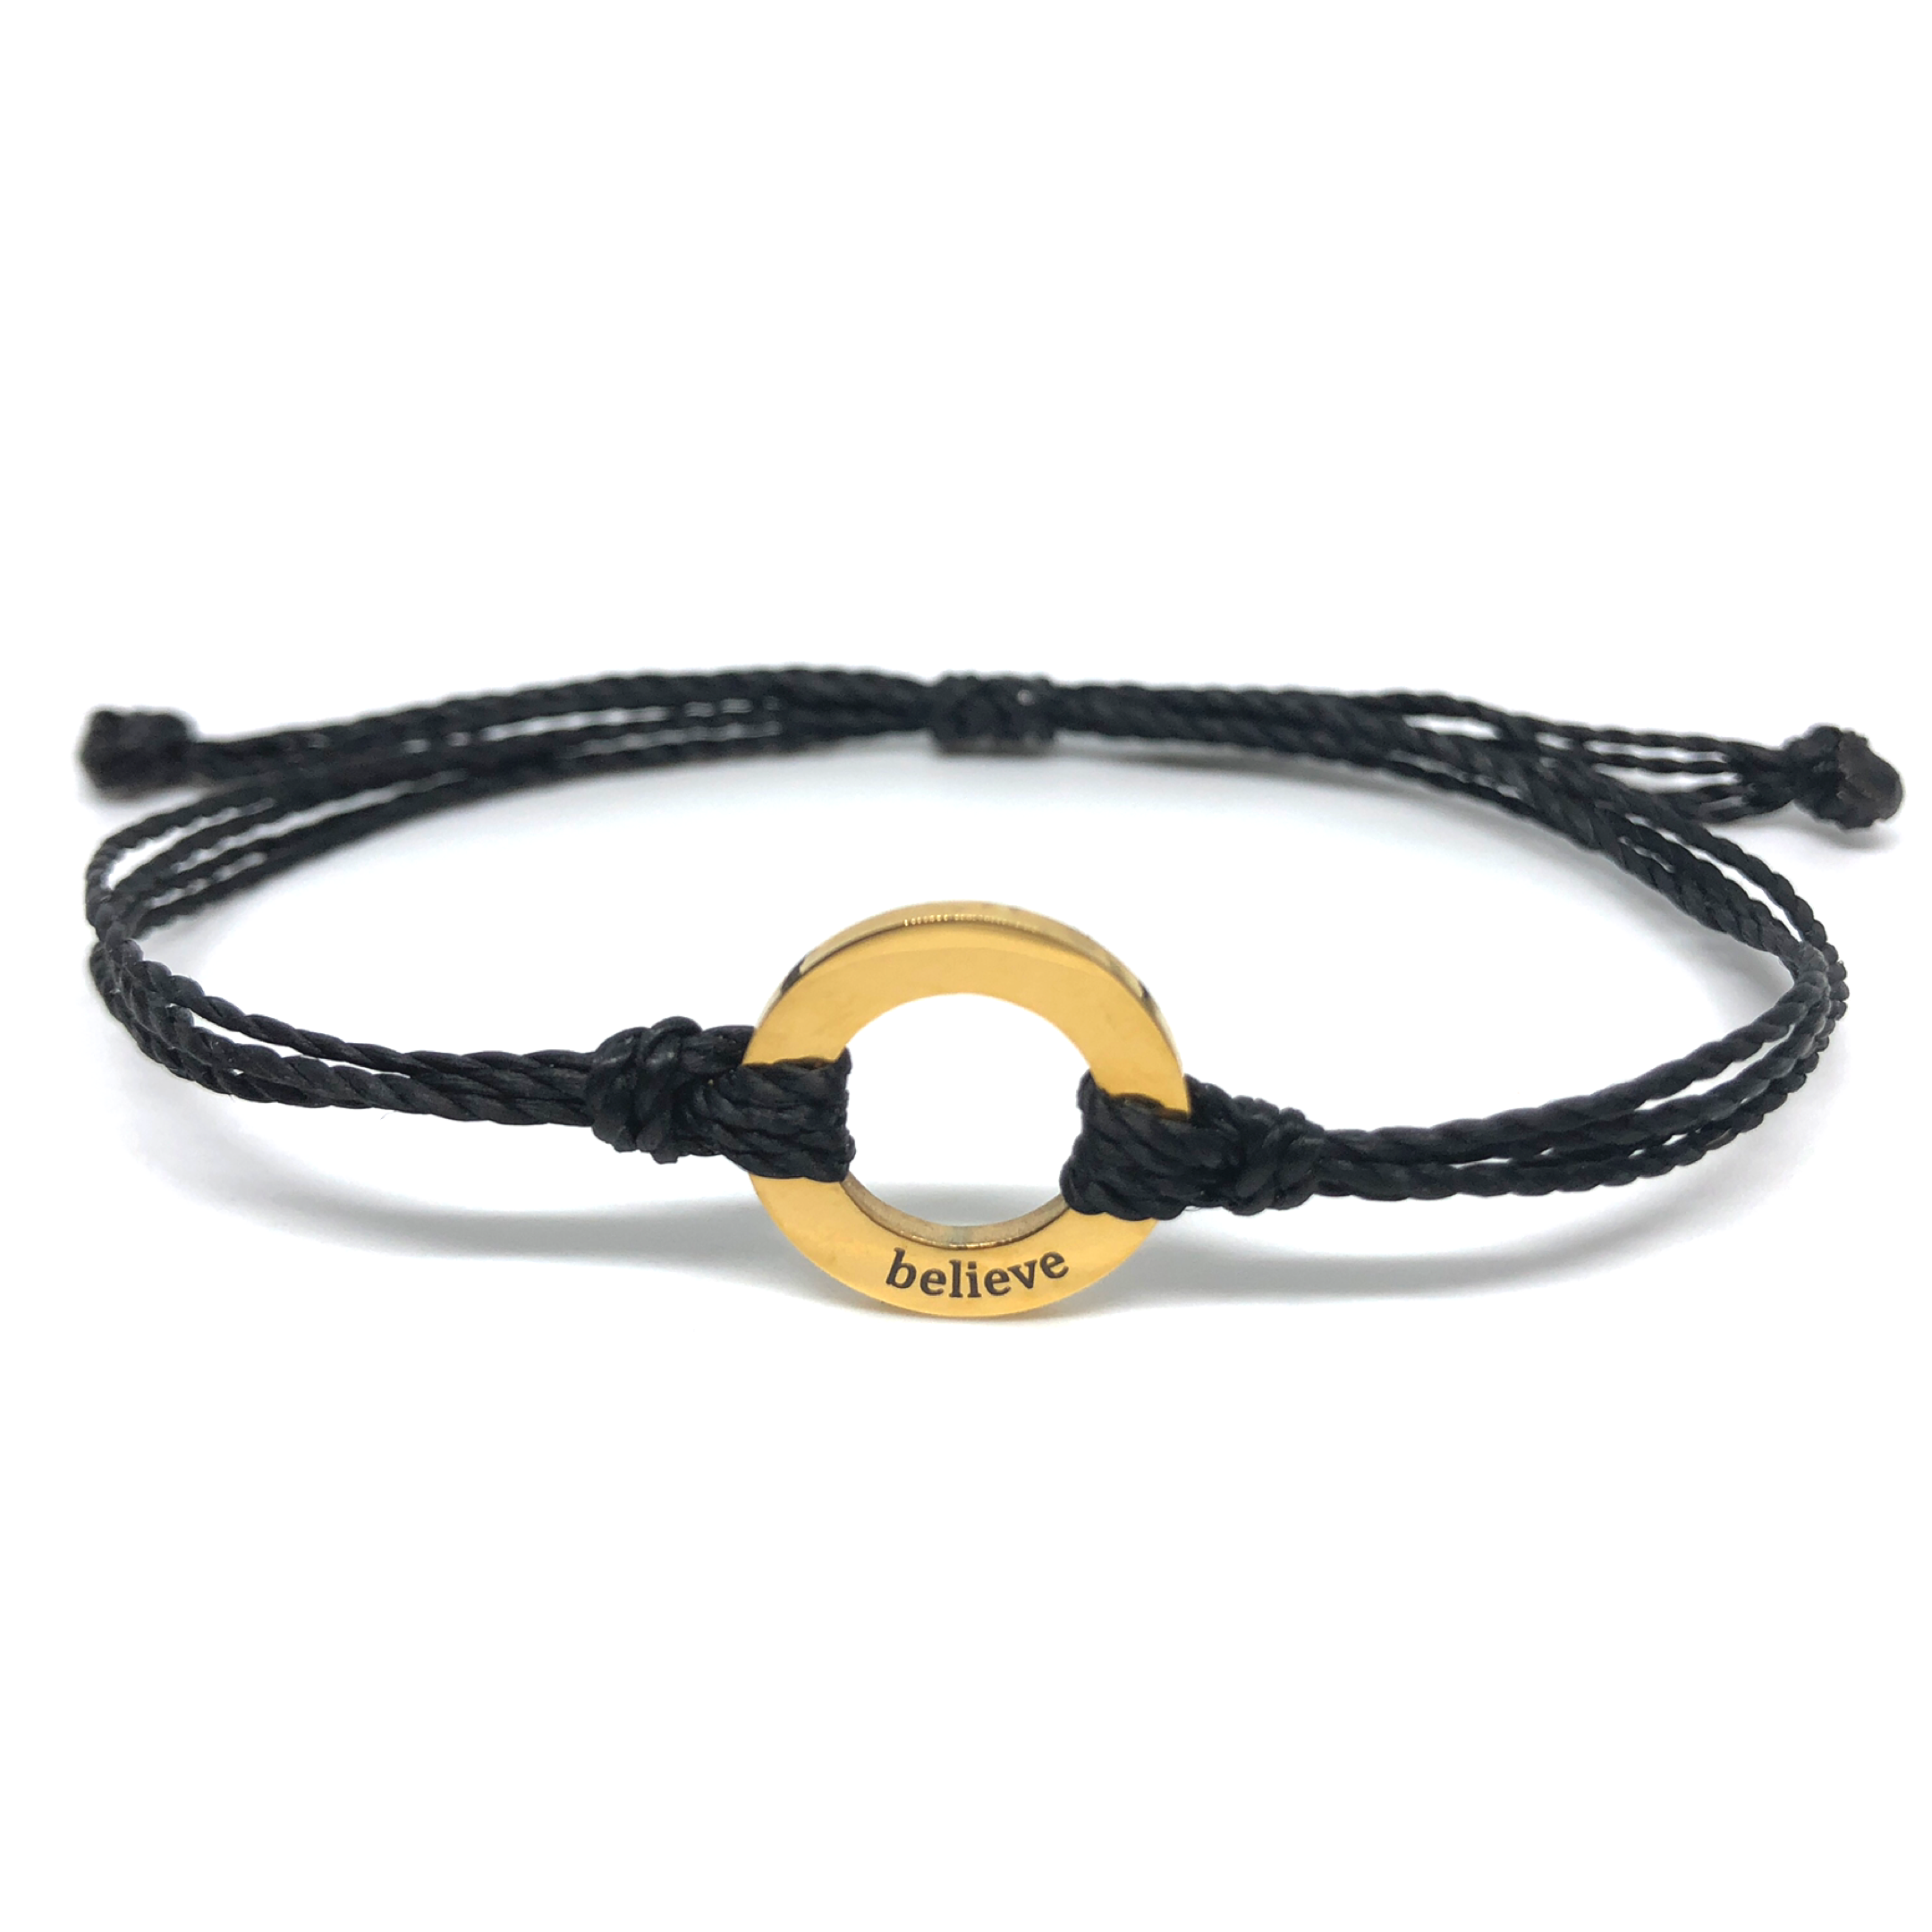 image of Believe black bracelet with gold plated circle charm